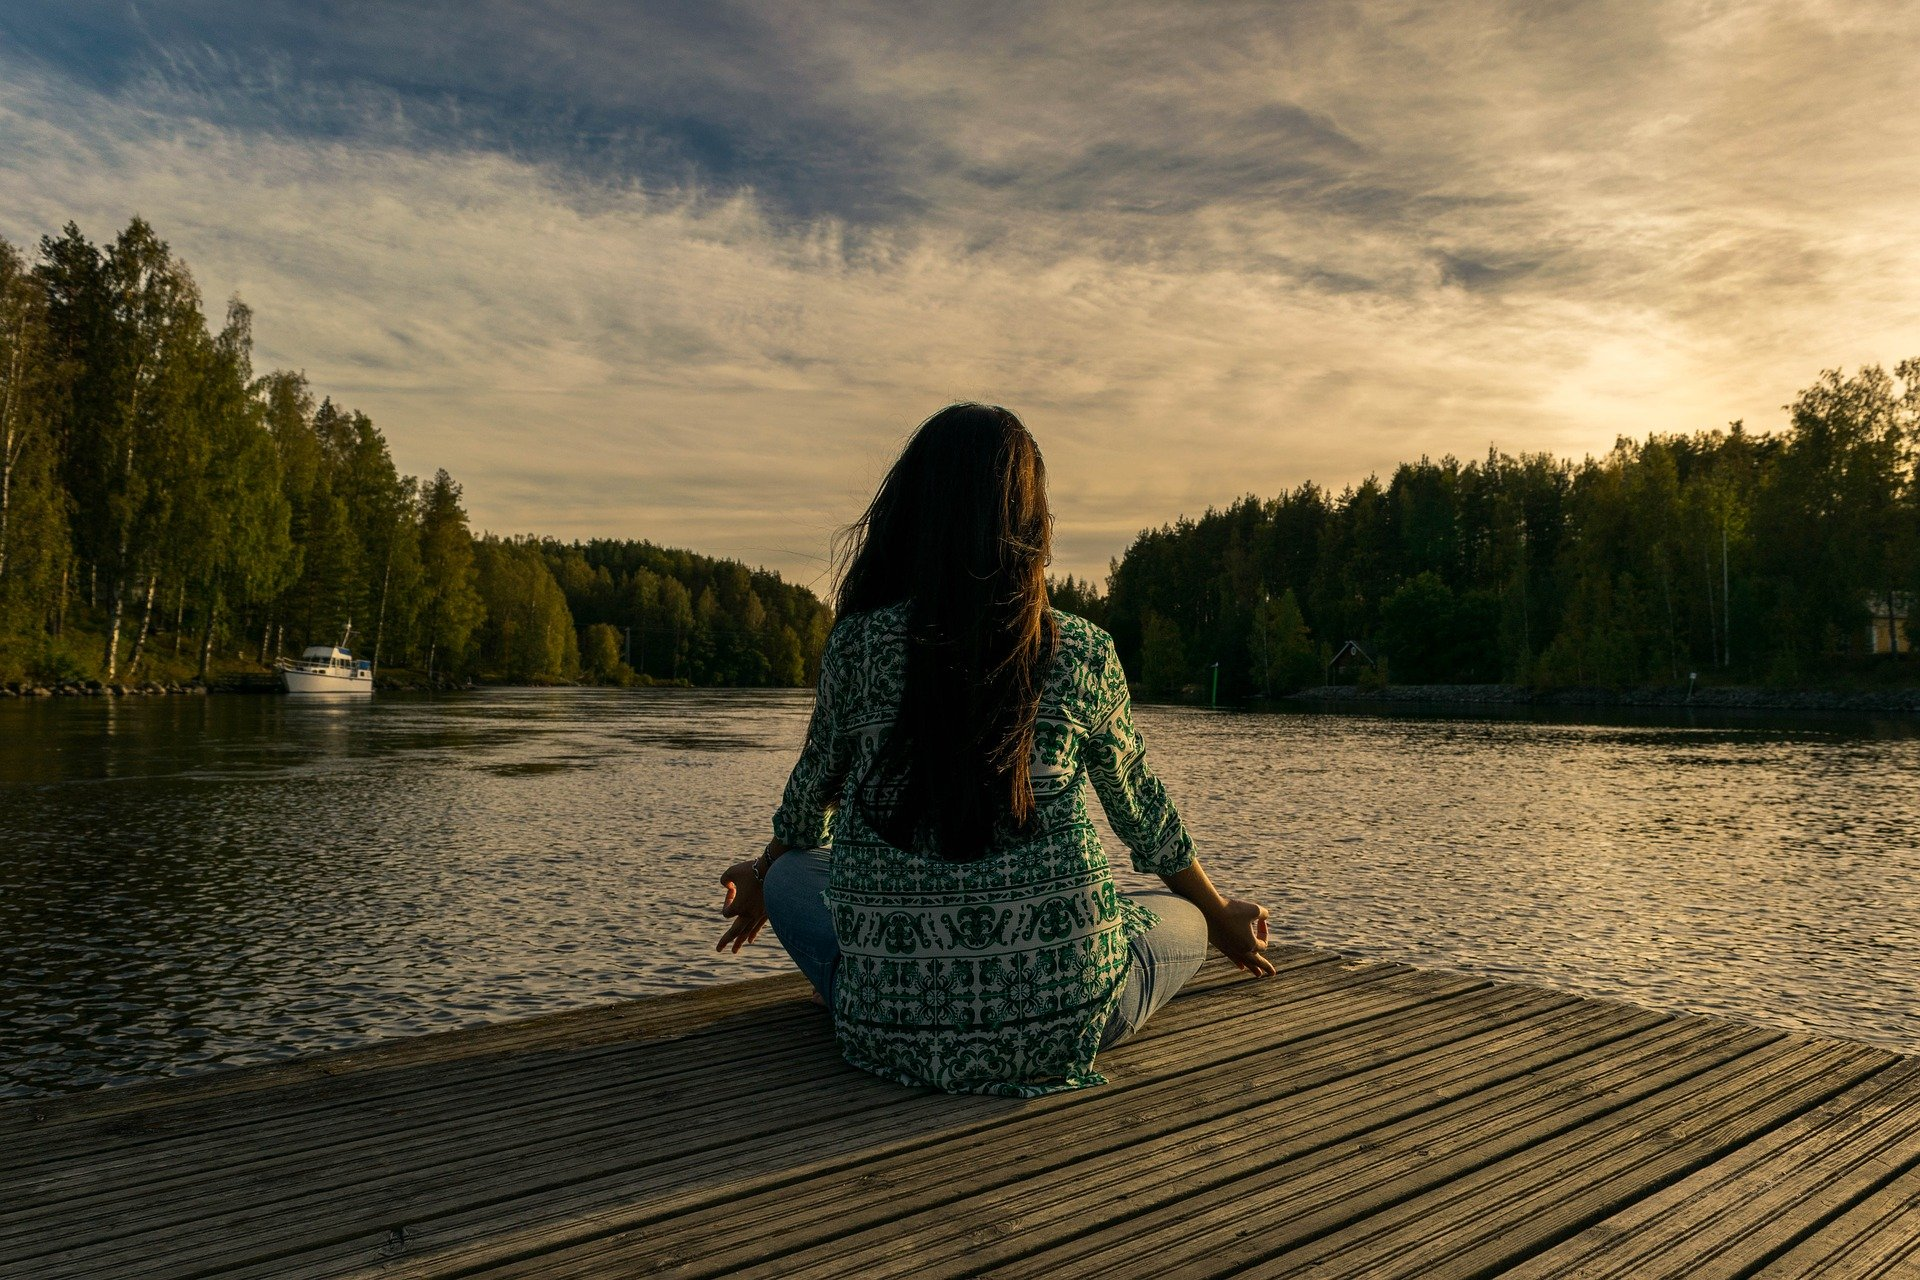 Mindfulness Meditation: What do you learn from mindfulness?